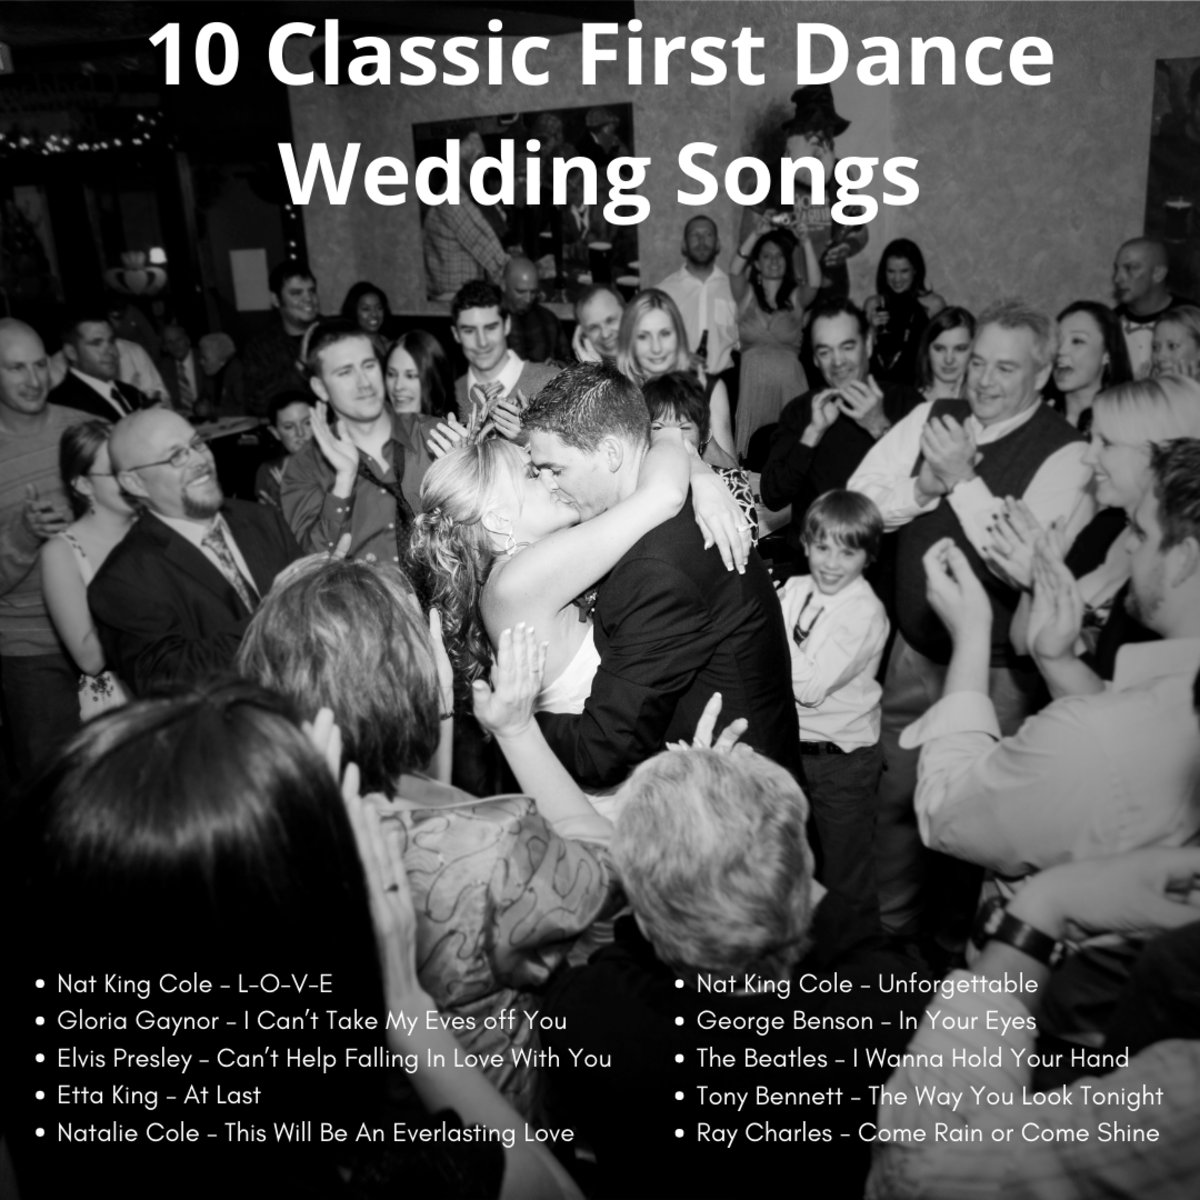 10 Classic First Dance Wedding Songs